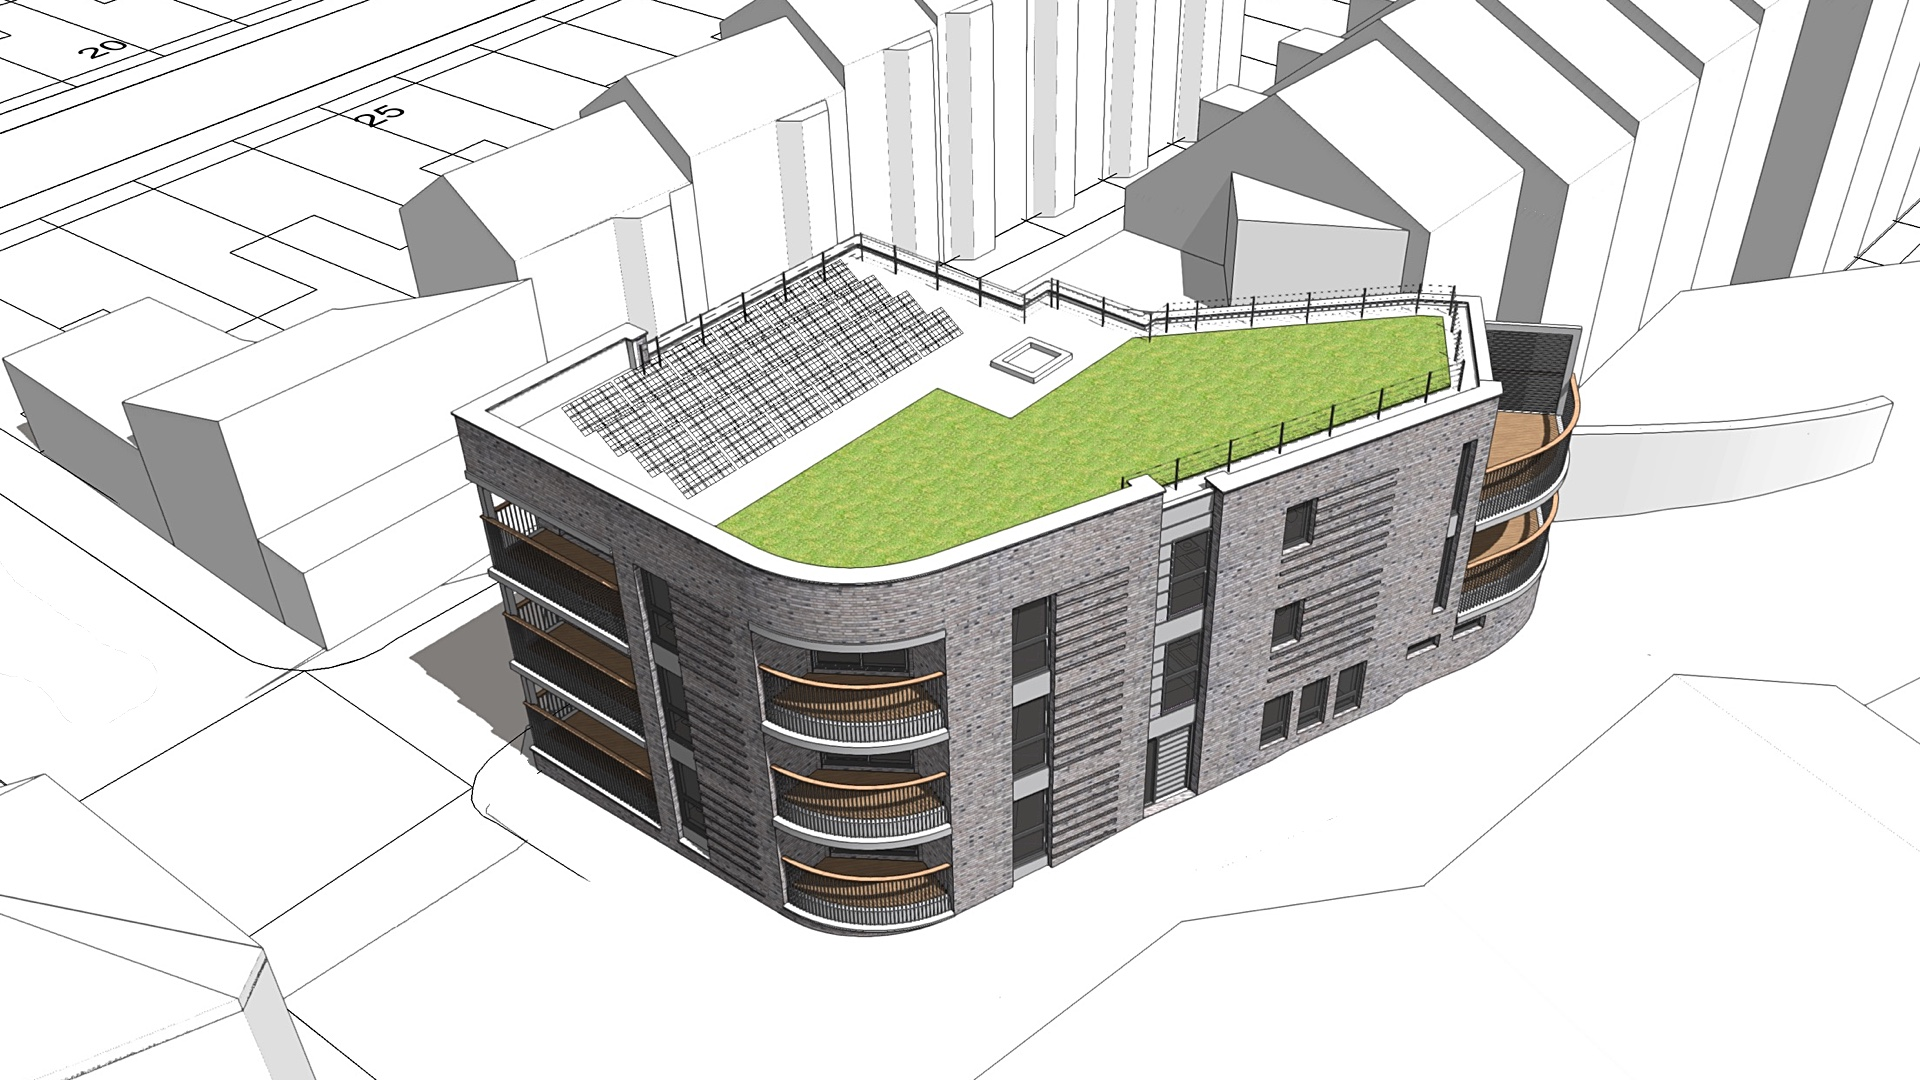 Planning permission for south Bristol apartment building